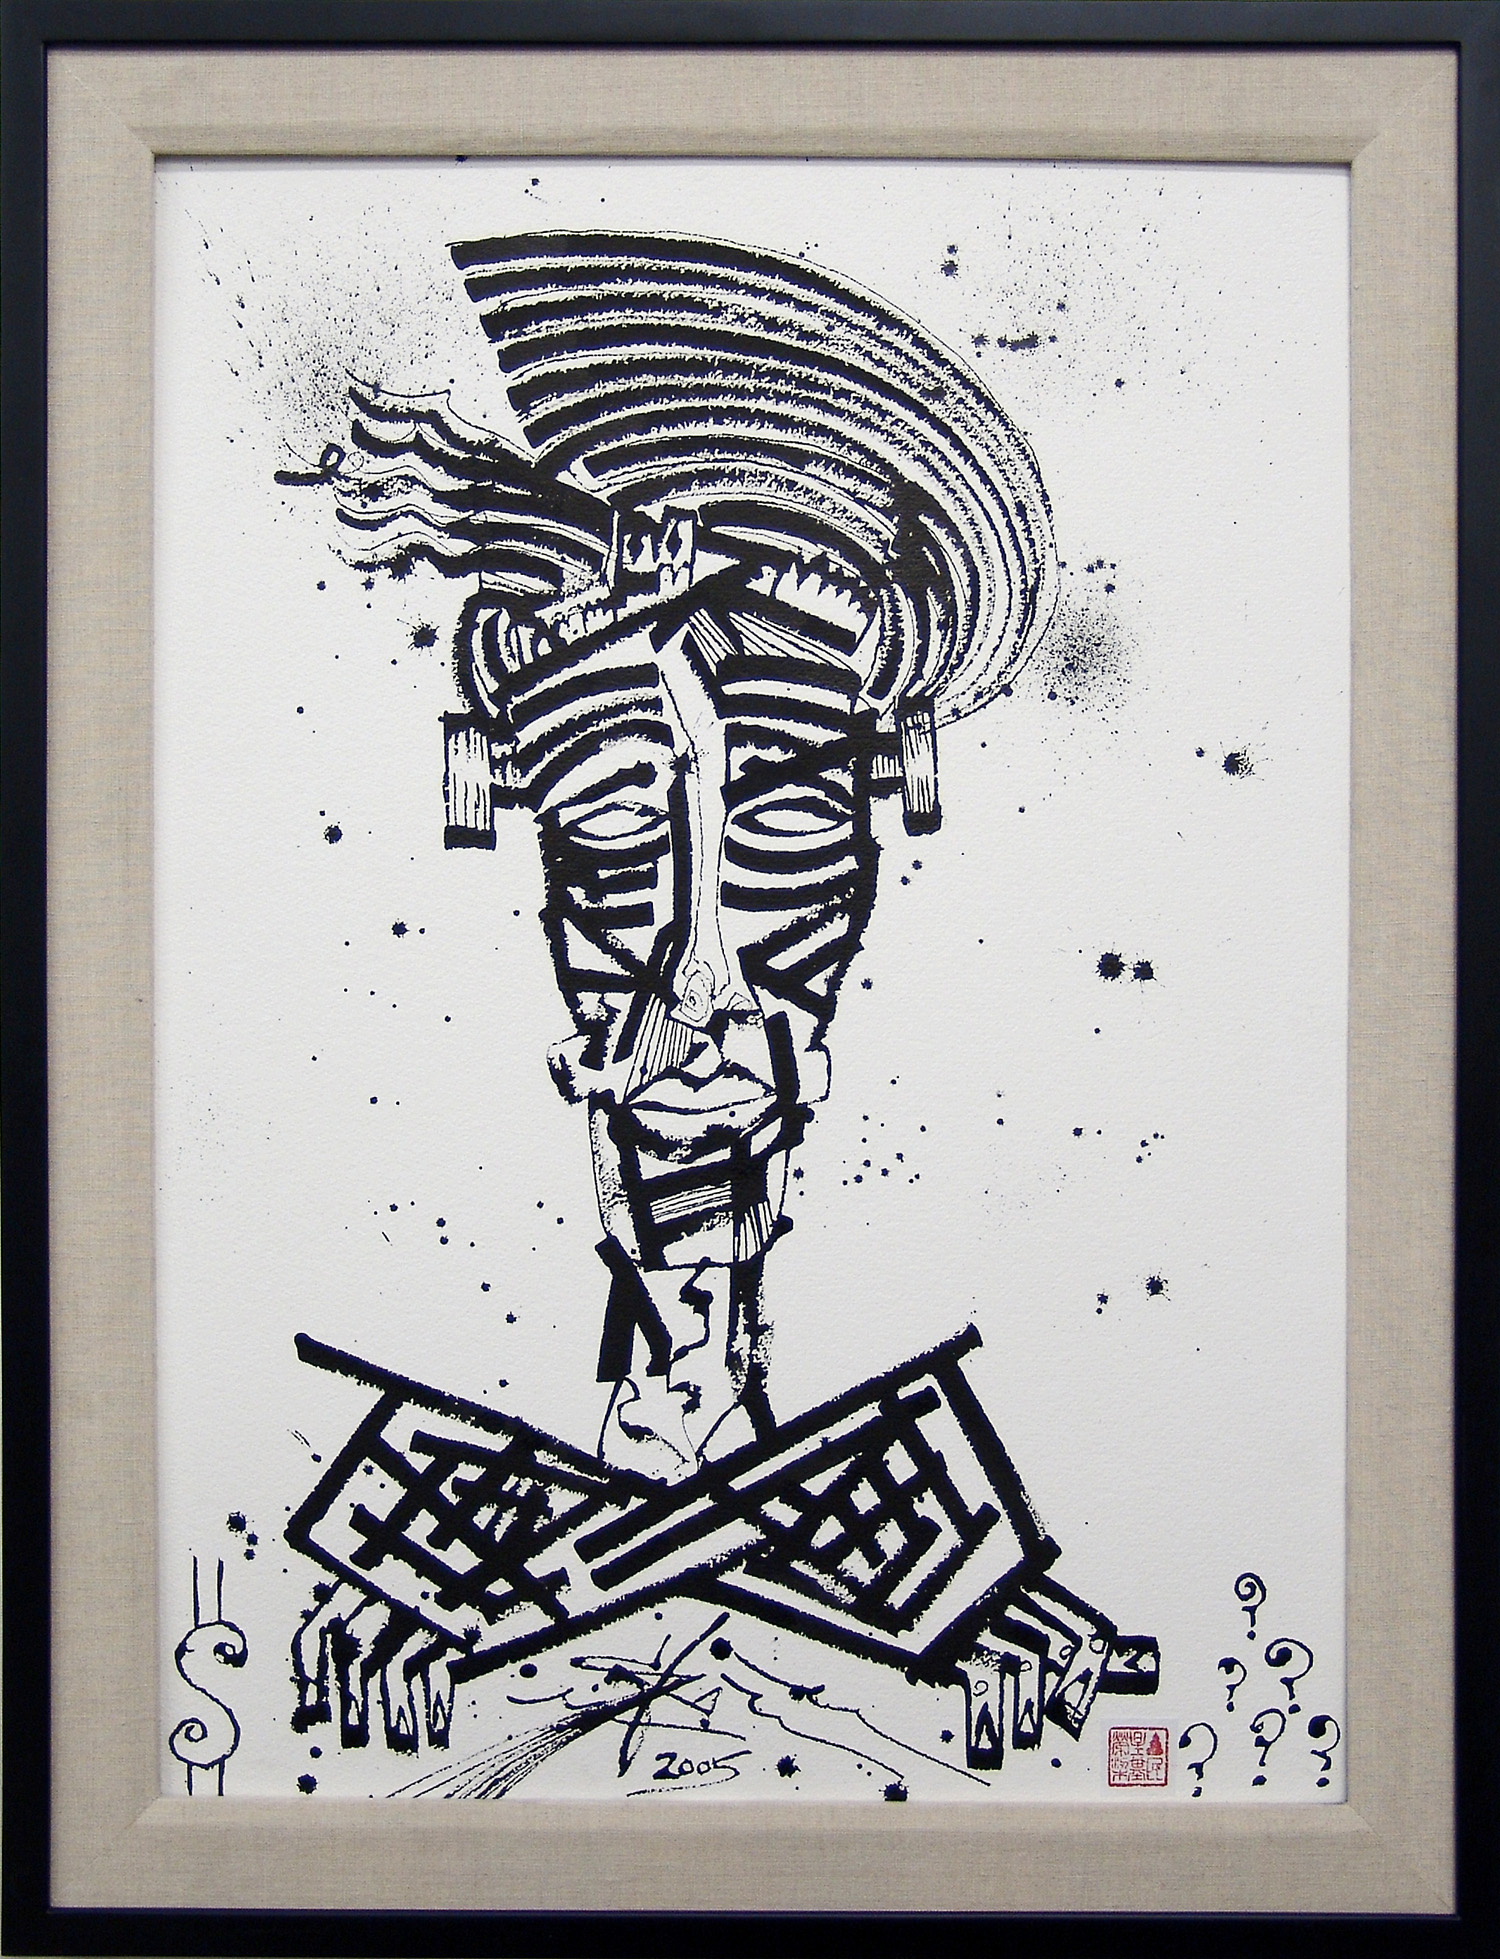 Stoic Frank (3 Shades of Madness), 2005 sumi ink on paper 30 x 22 inch